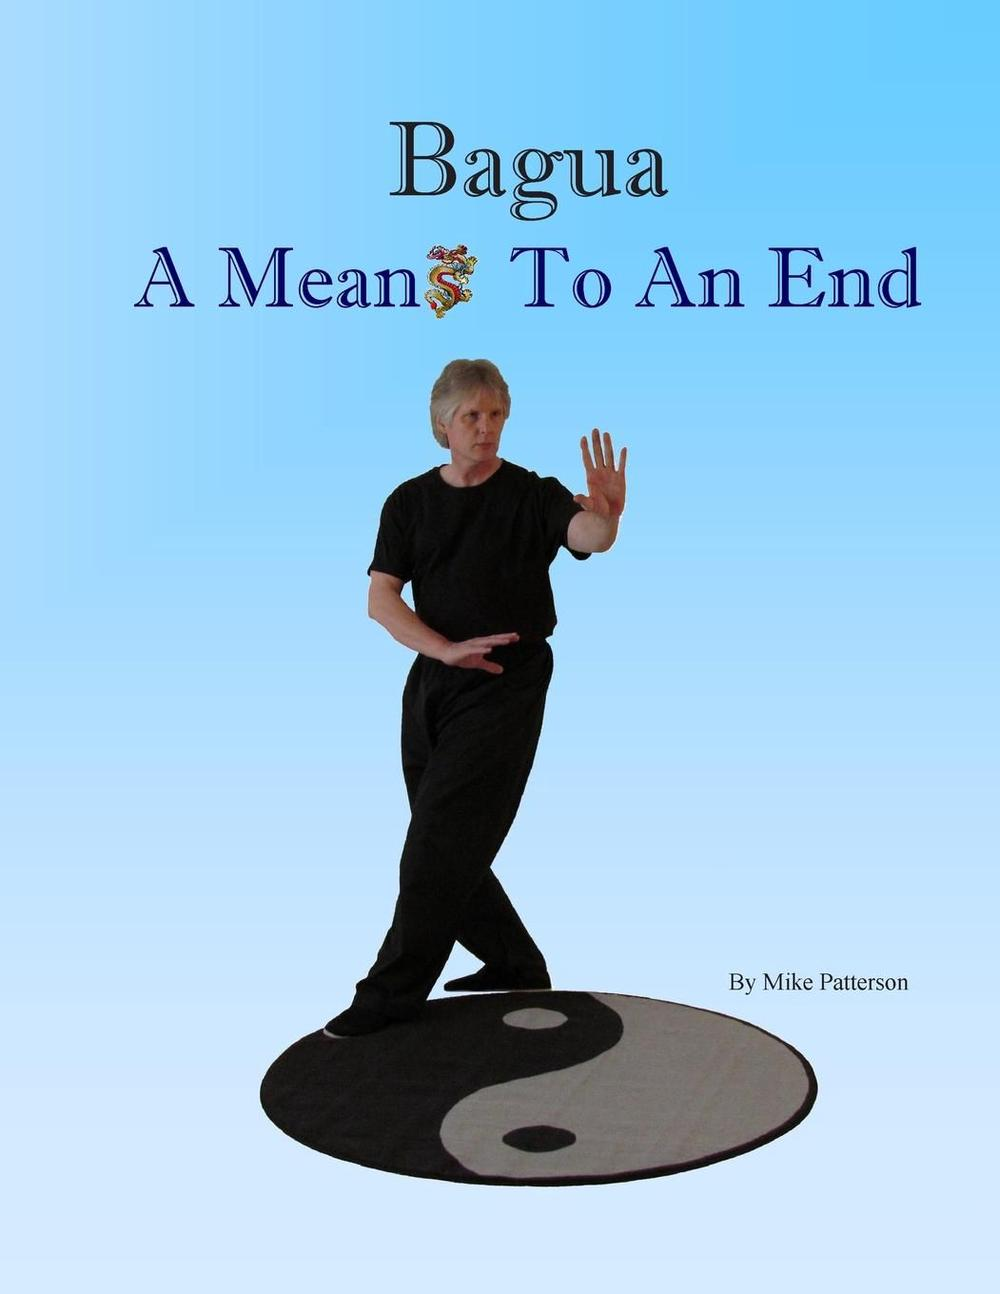 Bagua - A Means to an End. by Mike Patterson